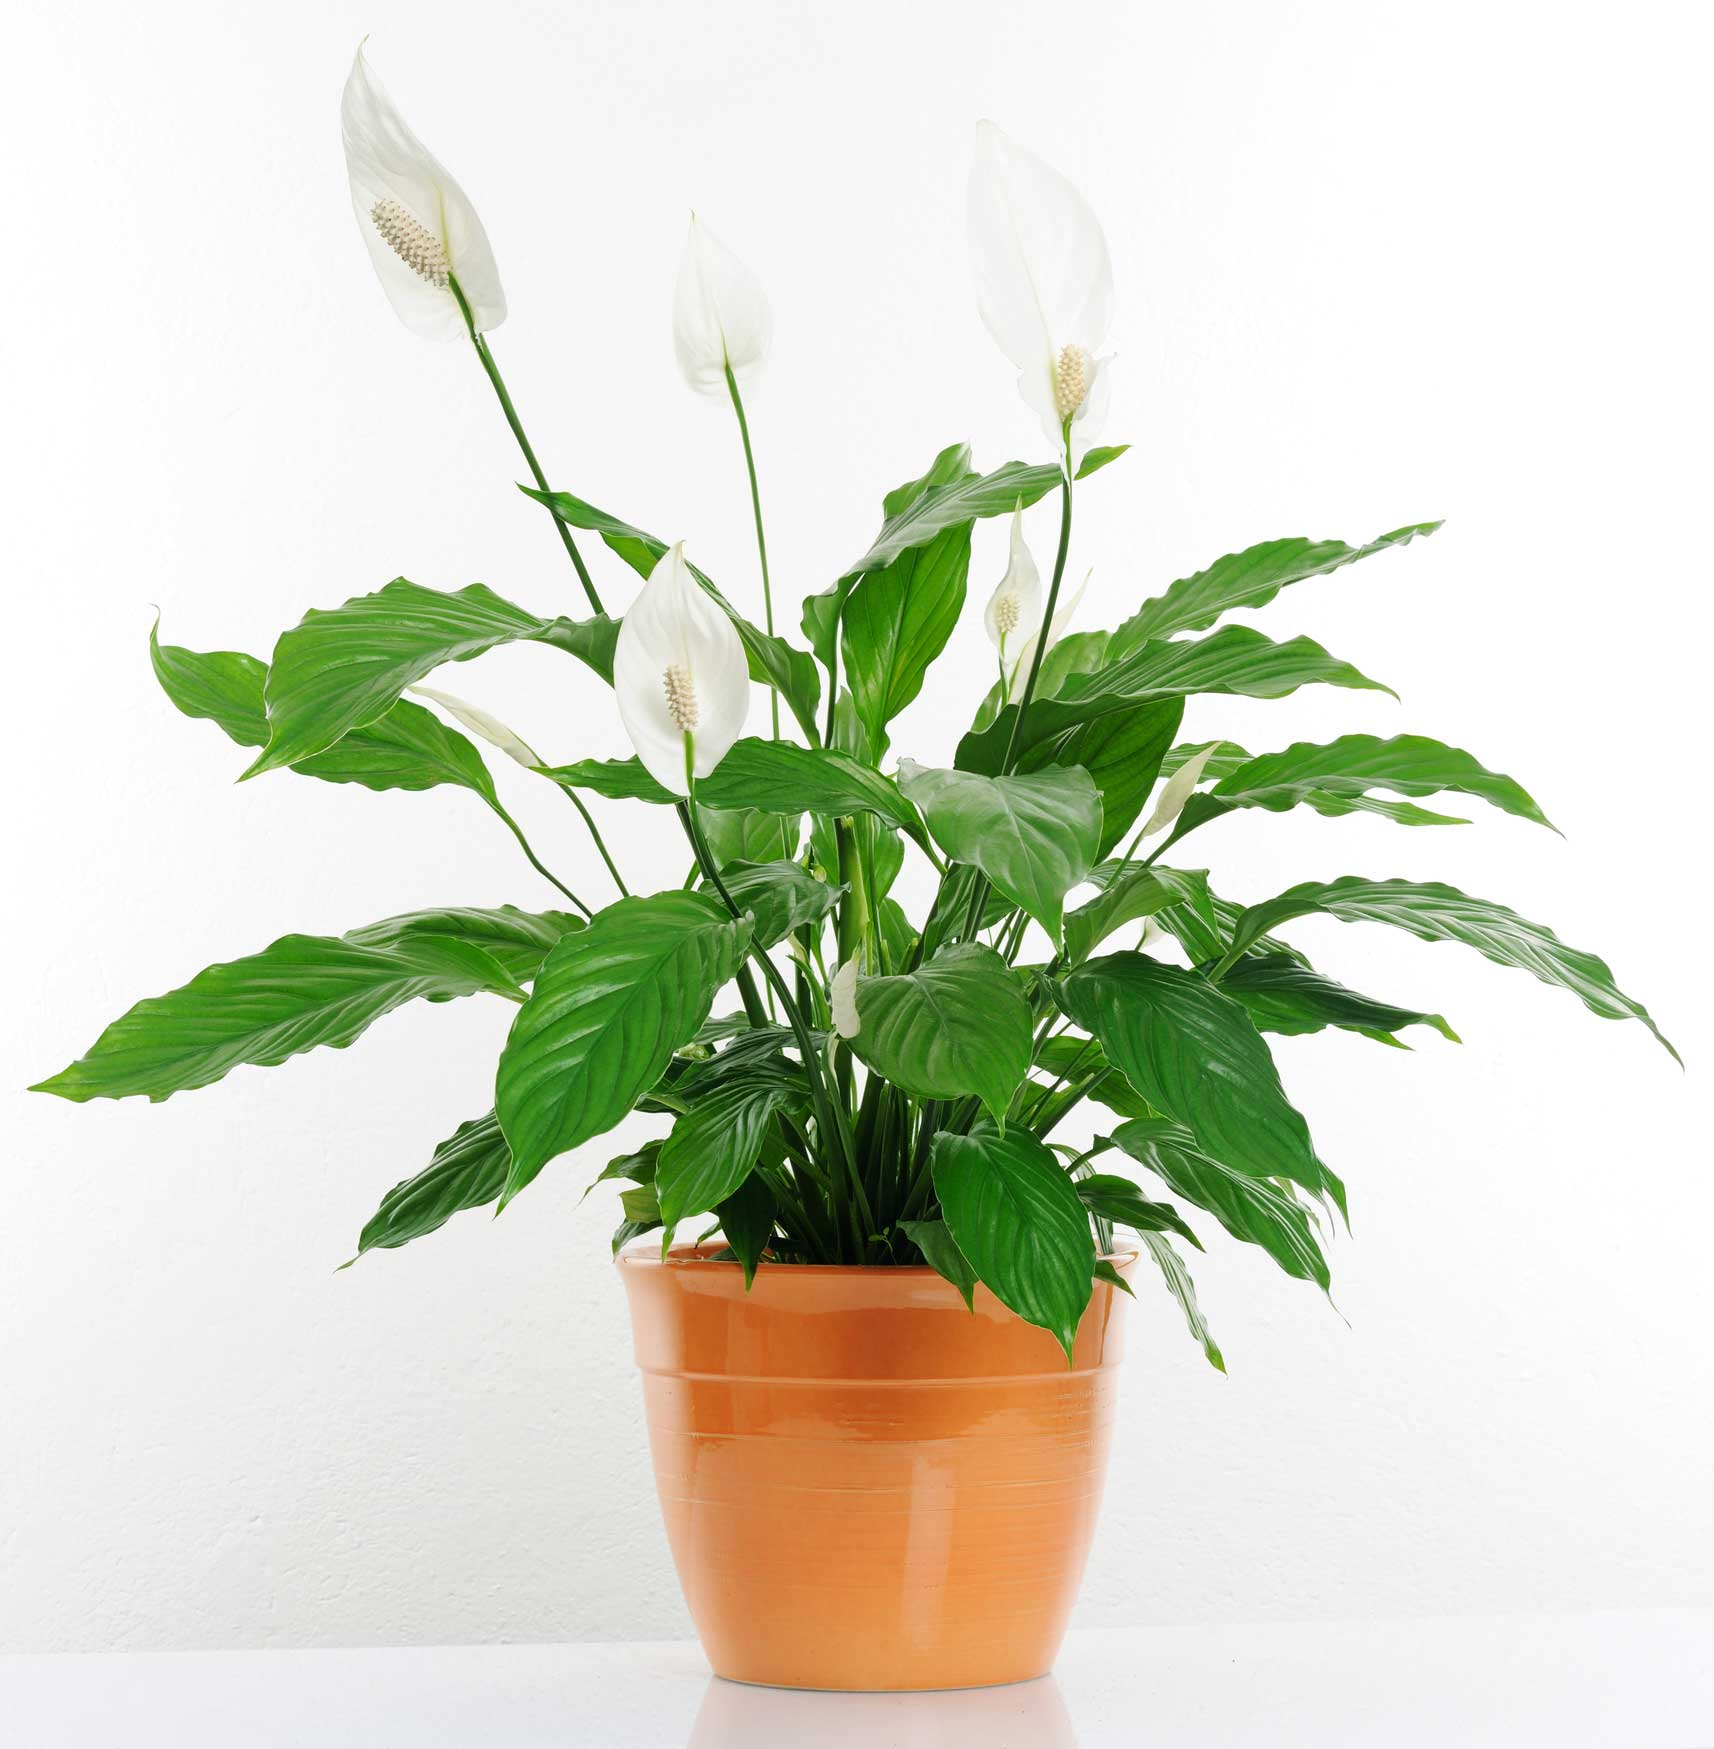 7. Peace Lily: